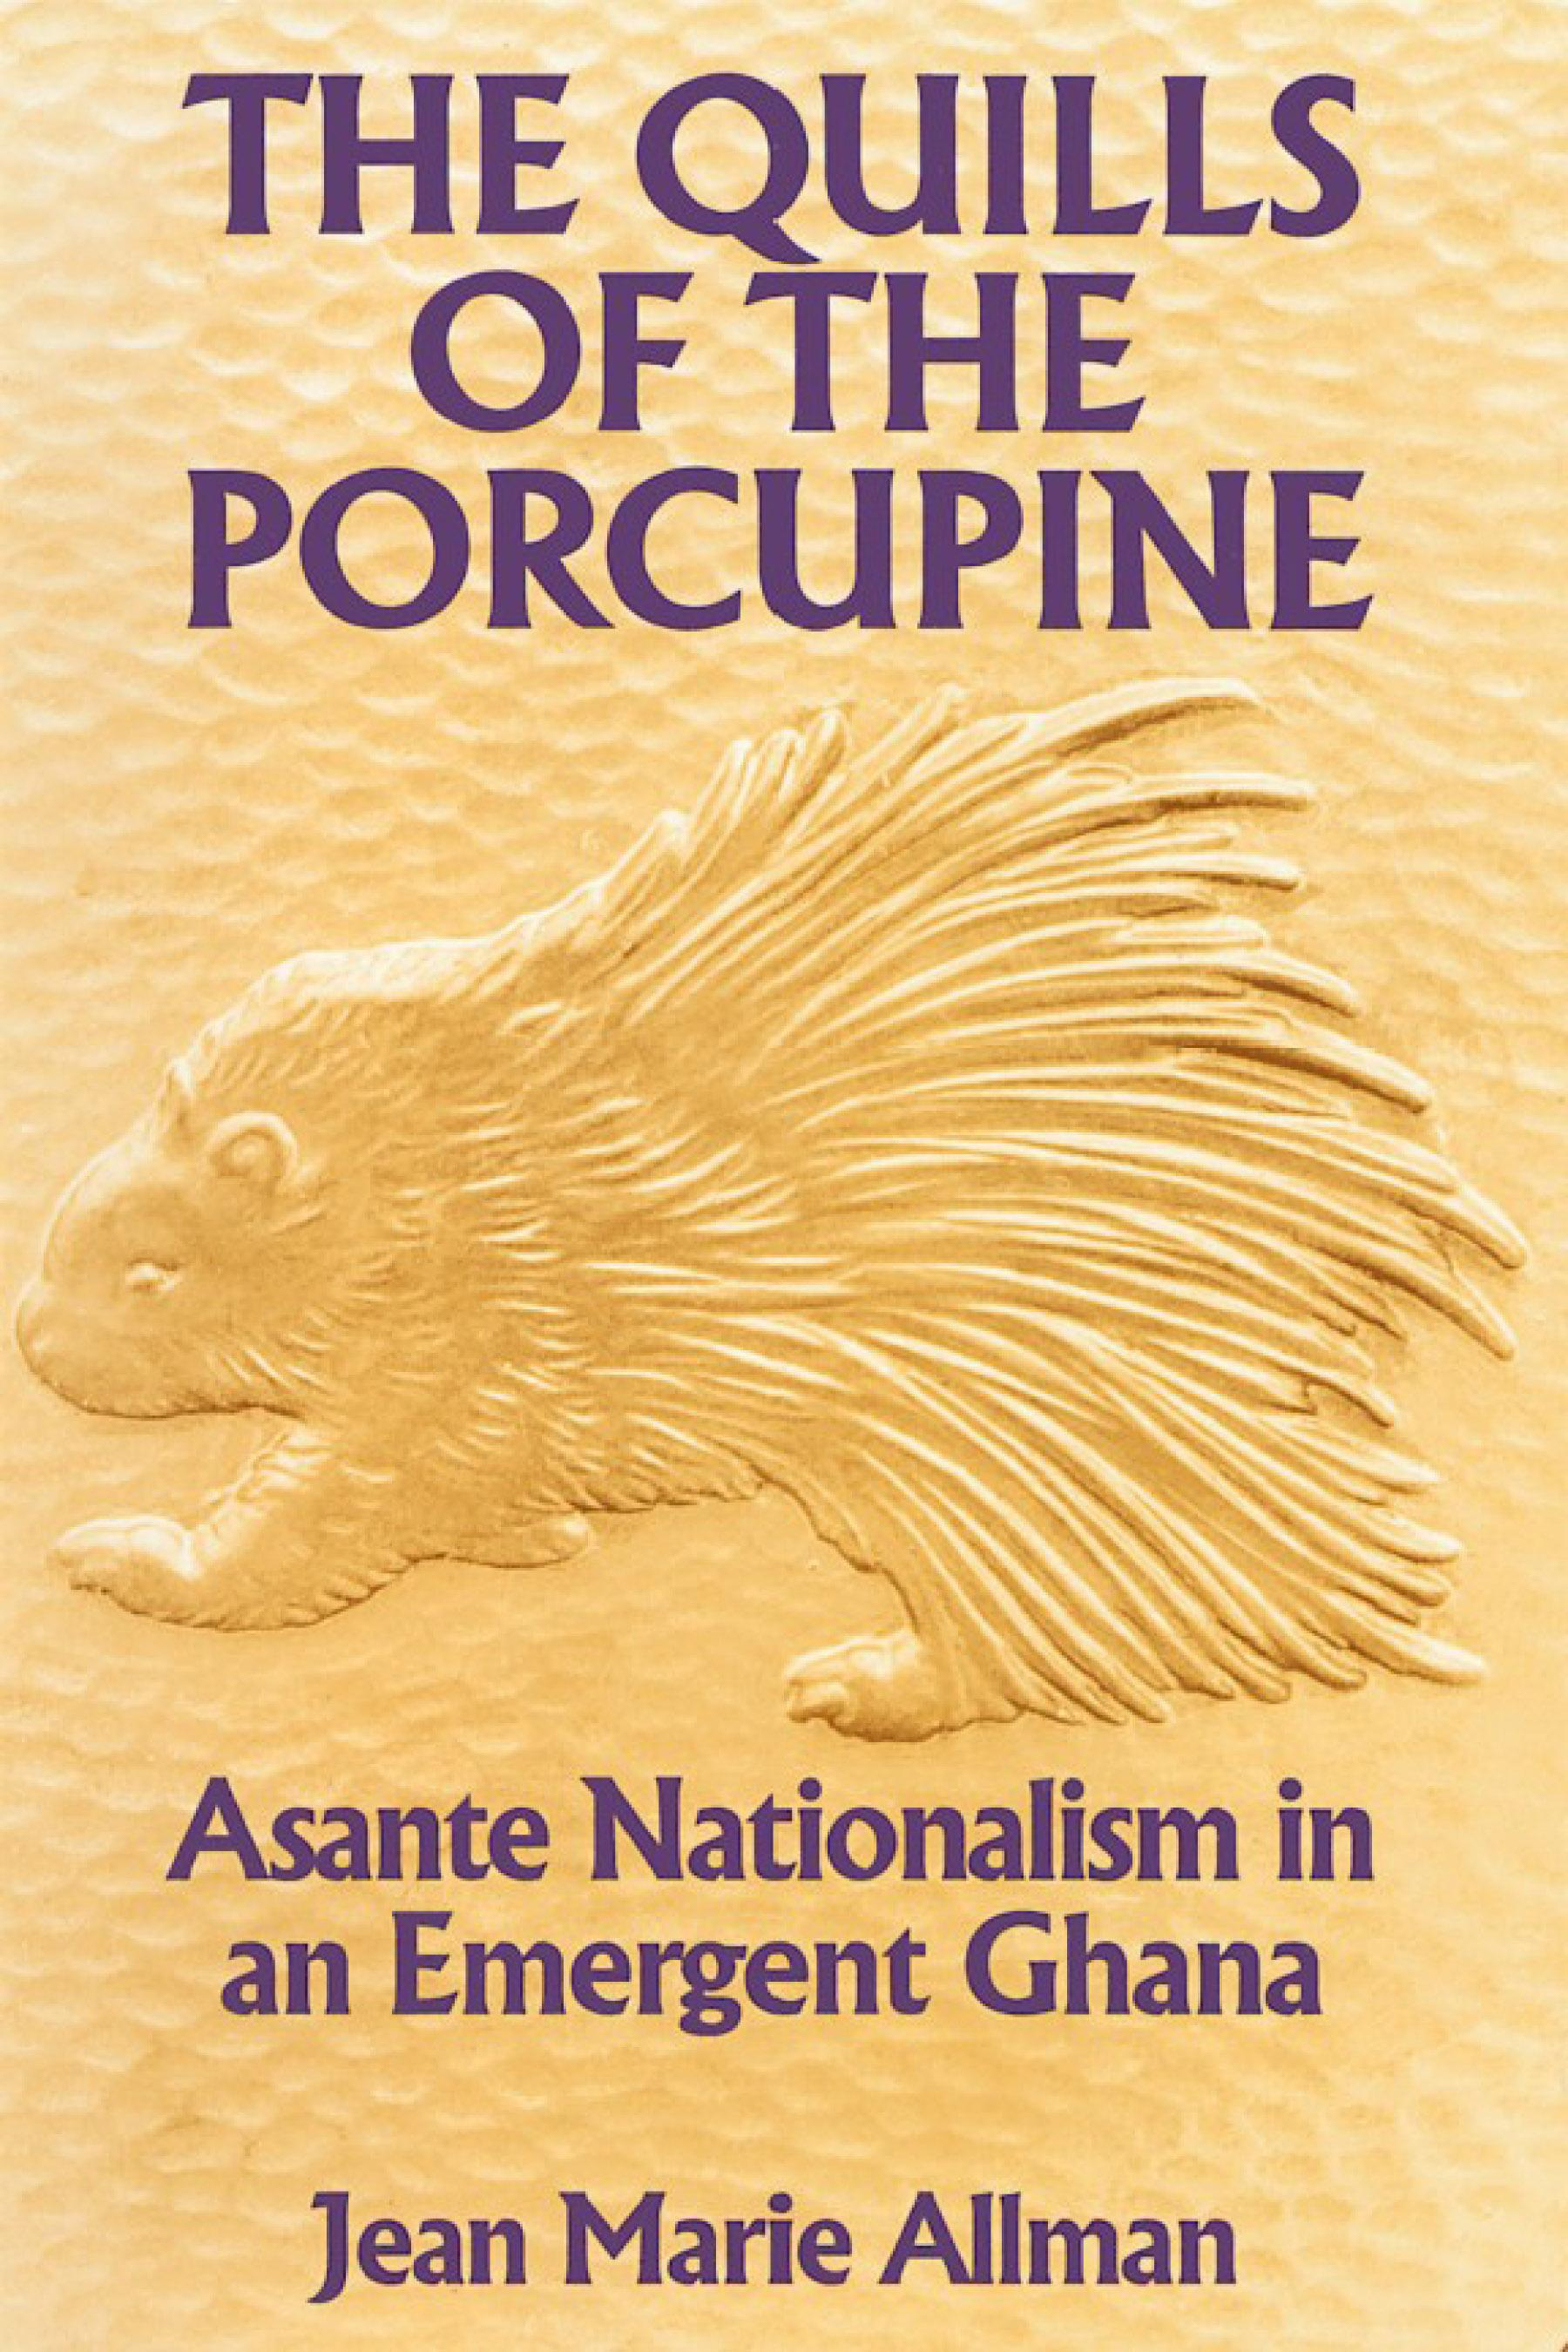 Quills Of The Porcupine: Asante Nationalism In An Emergent Ghana EB9780299137632